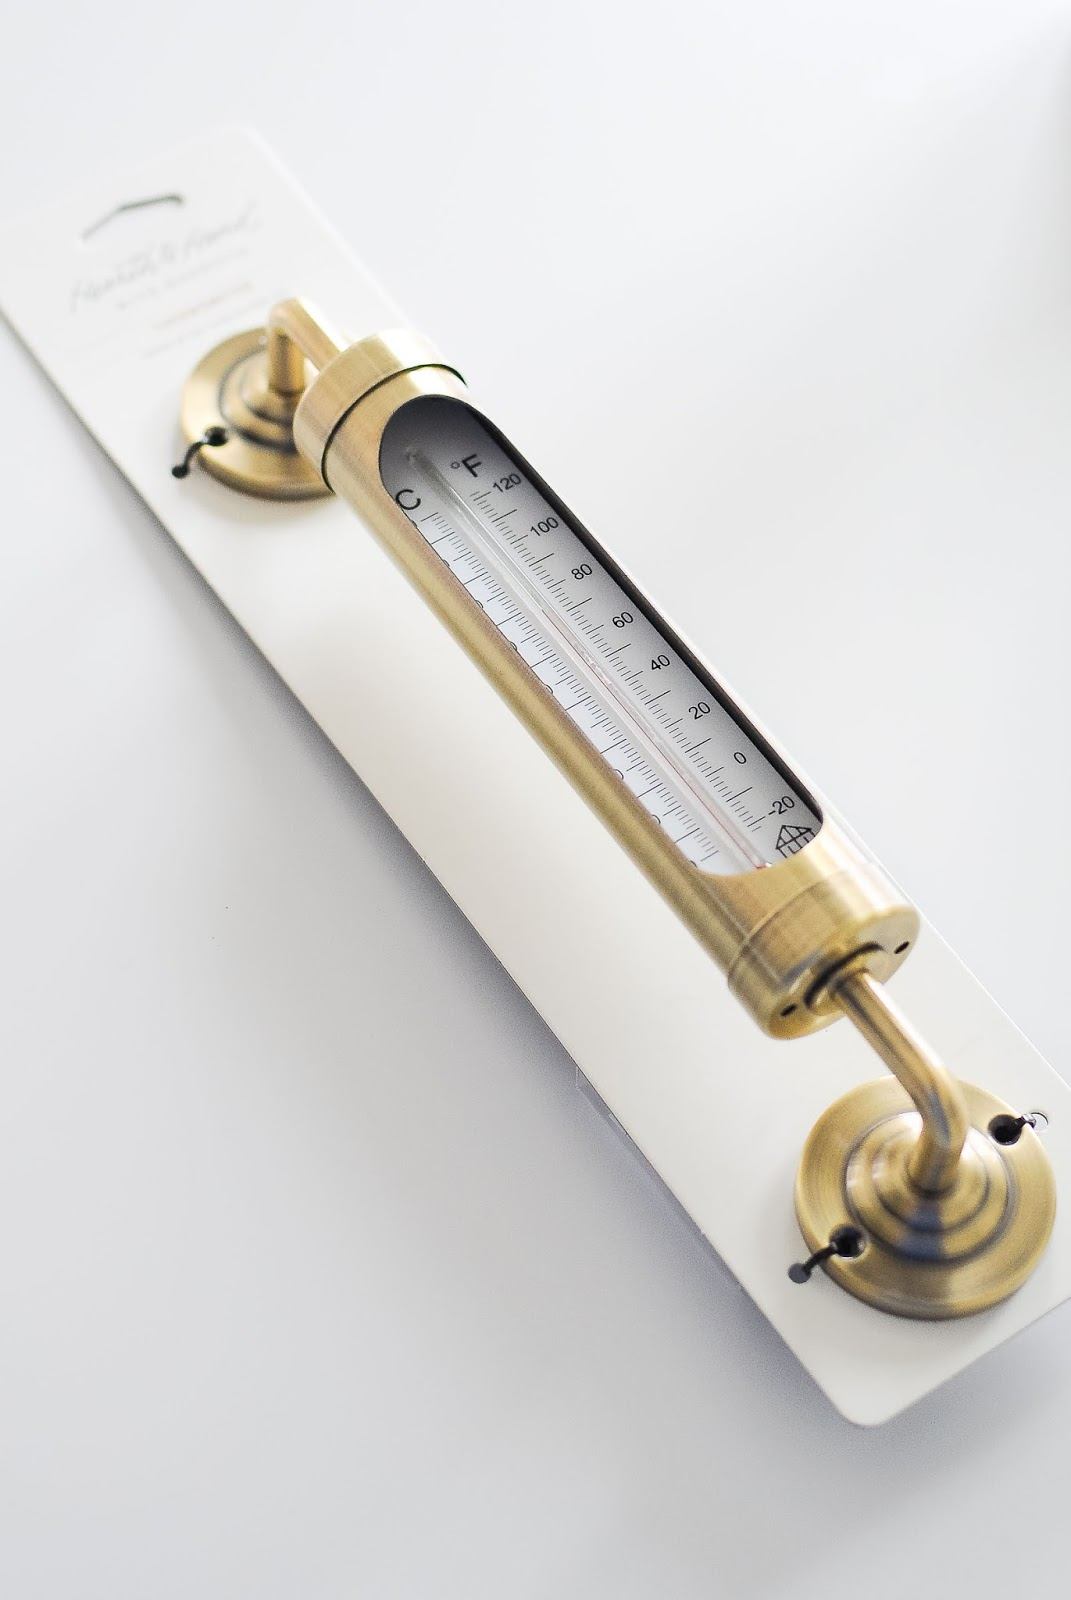 Gorgeous brass thermometer adds a glam decor touch to any space.